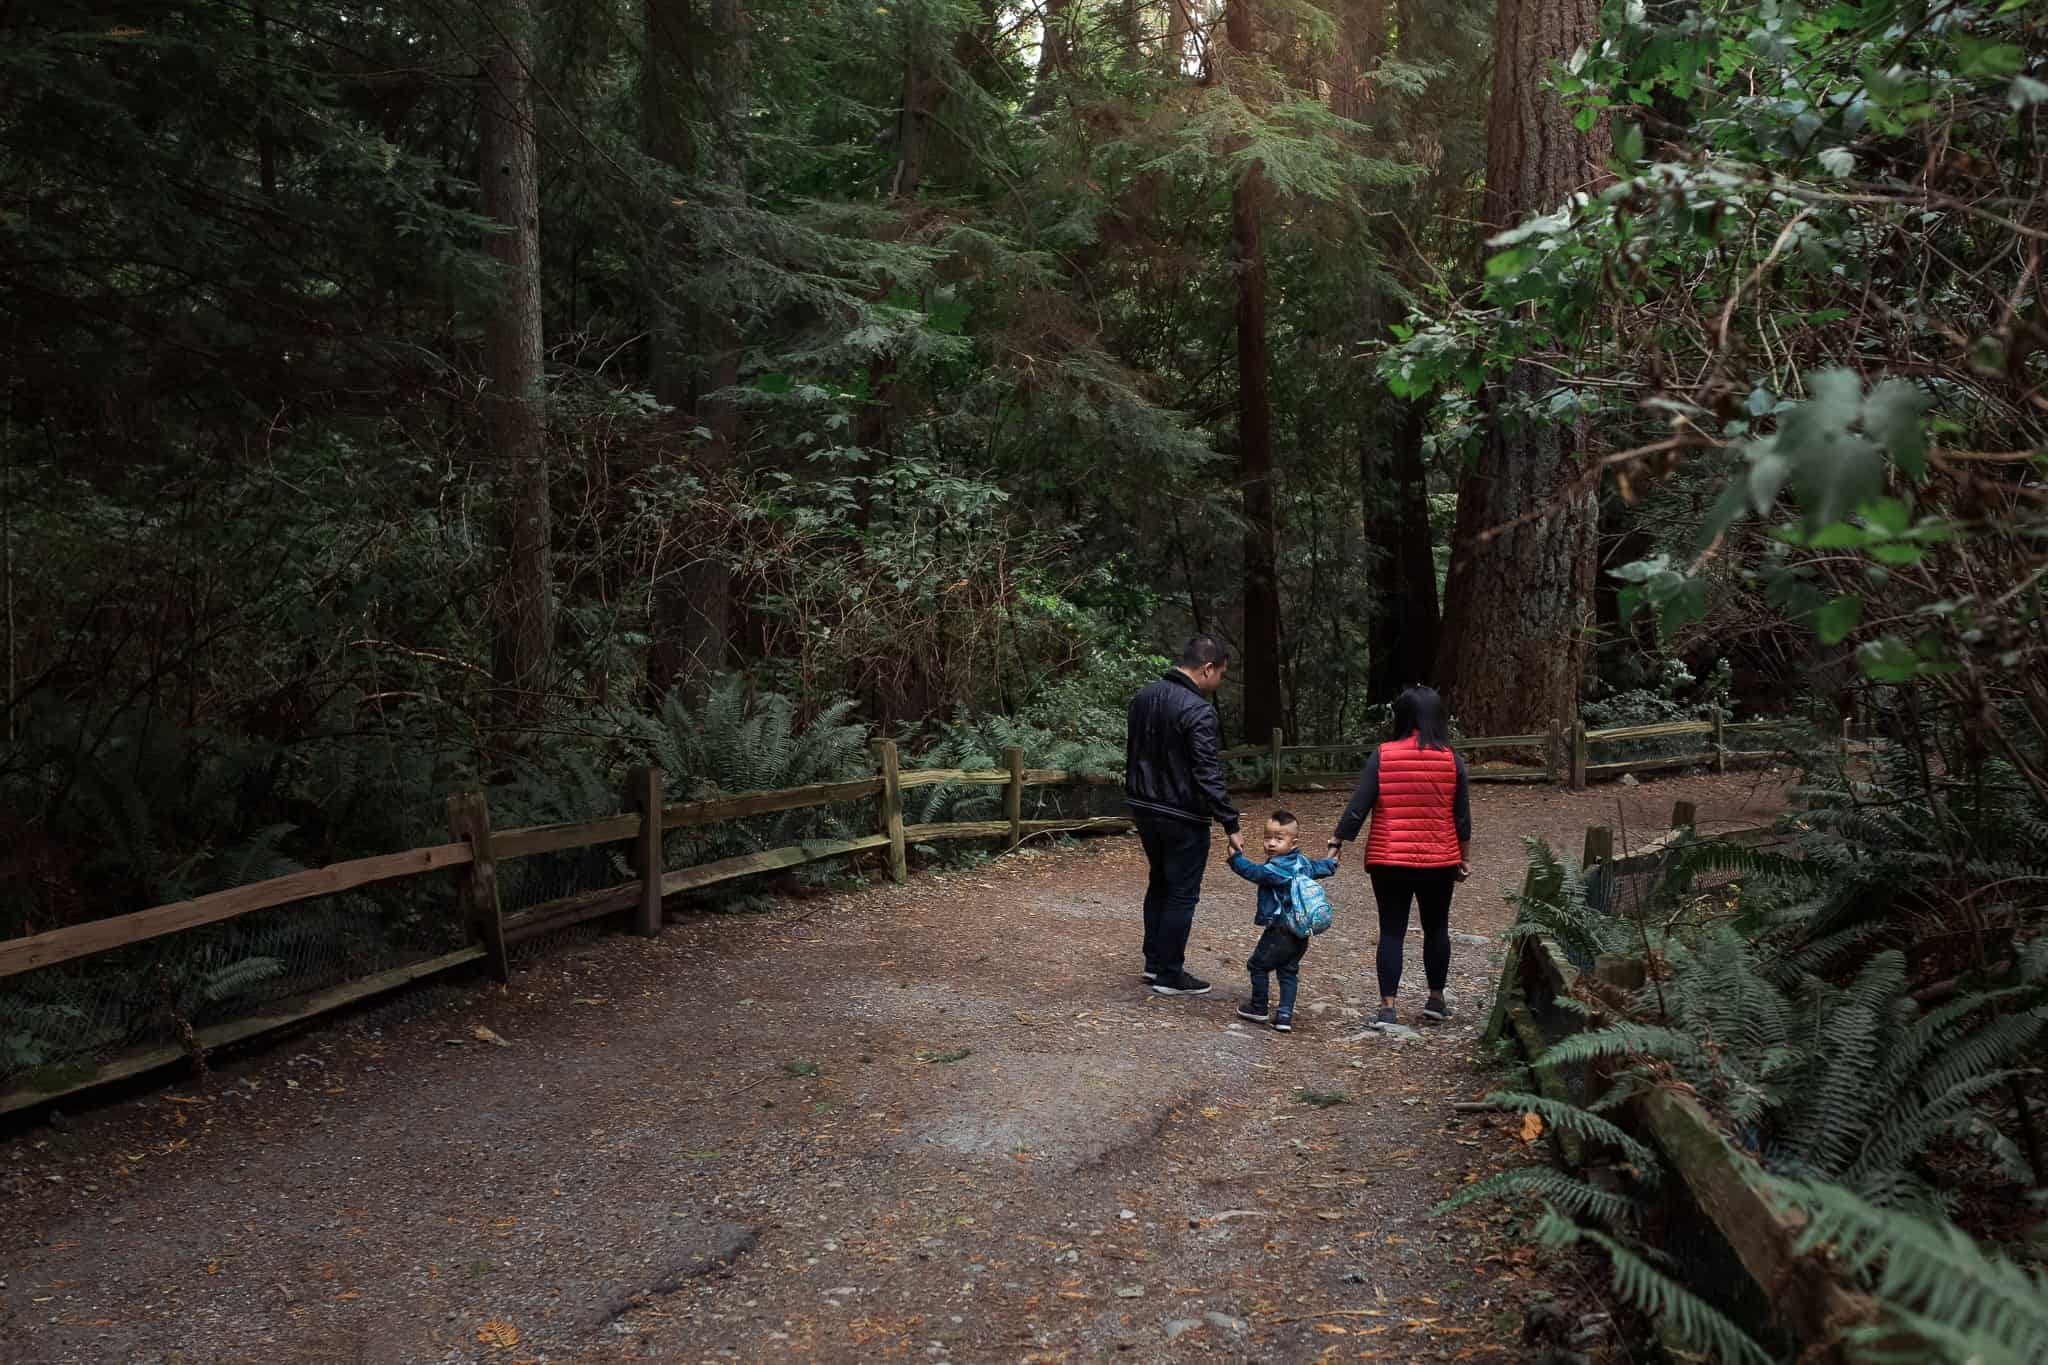 family walking down forest path holding hands while toddler looks back at the camera